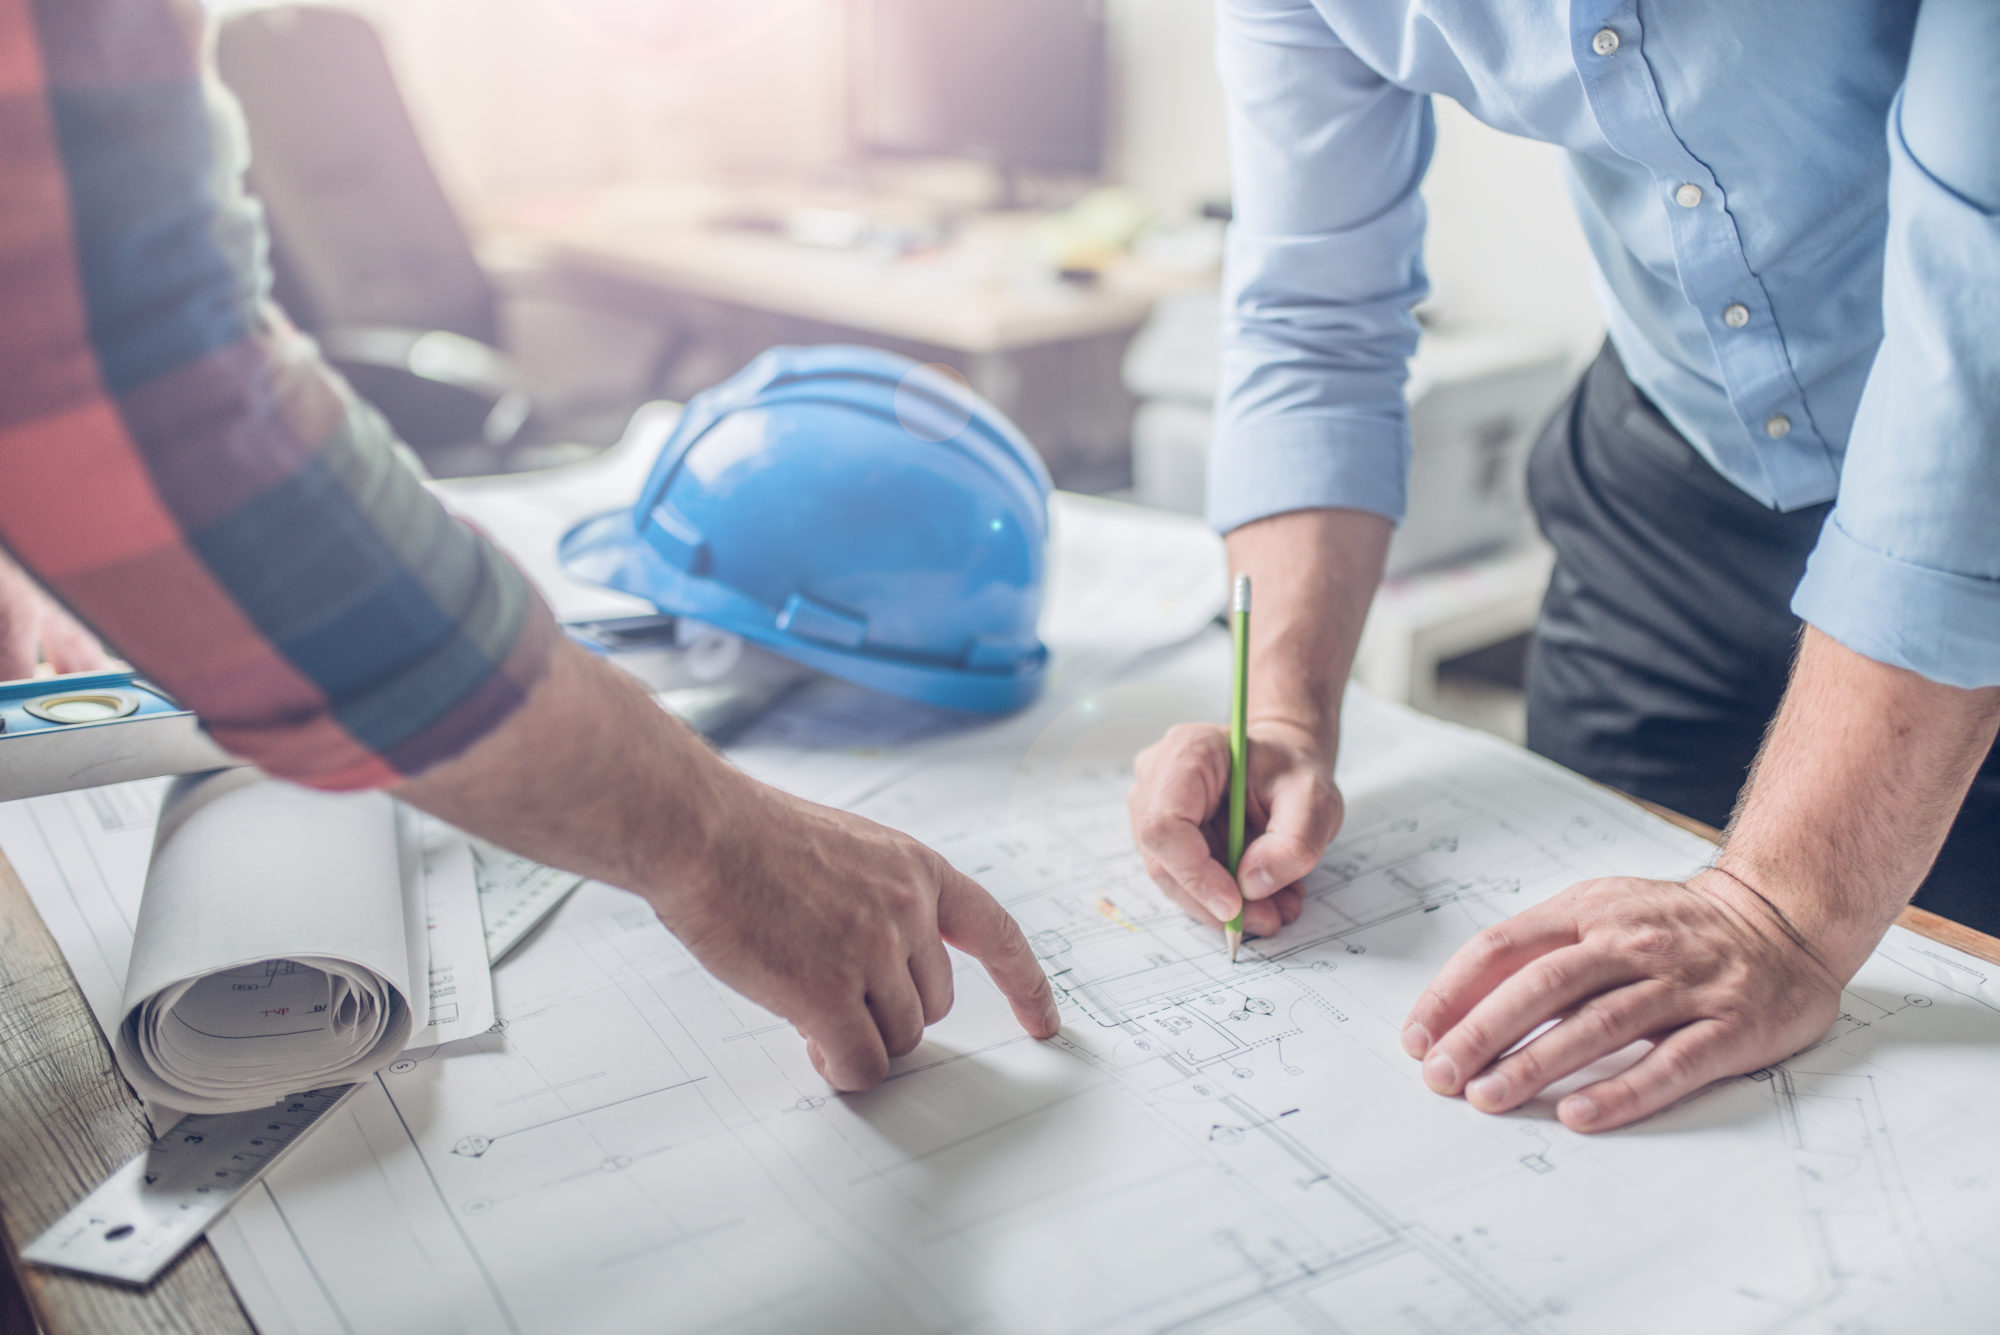 Hands of an architect and an engineer pointing at the architectural plan